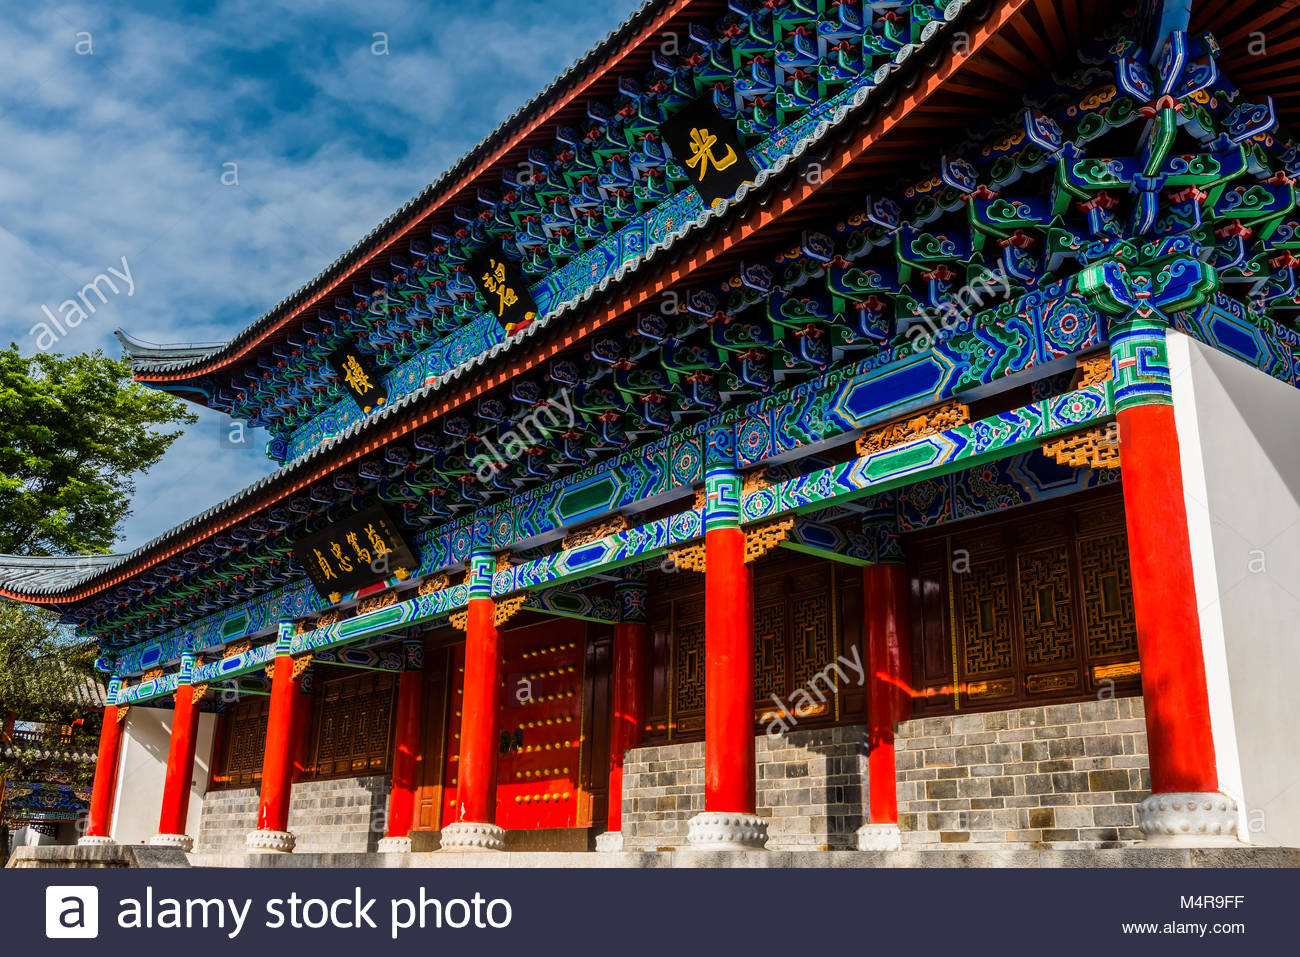 Mu's Residence, The Old Town (Dayan) of Lijiang, Yunnan Province, China. The Old Town is a UNESCO World Heritage - Stock Image